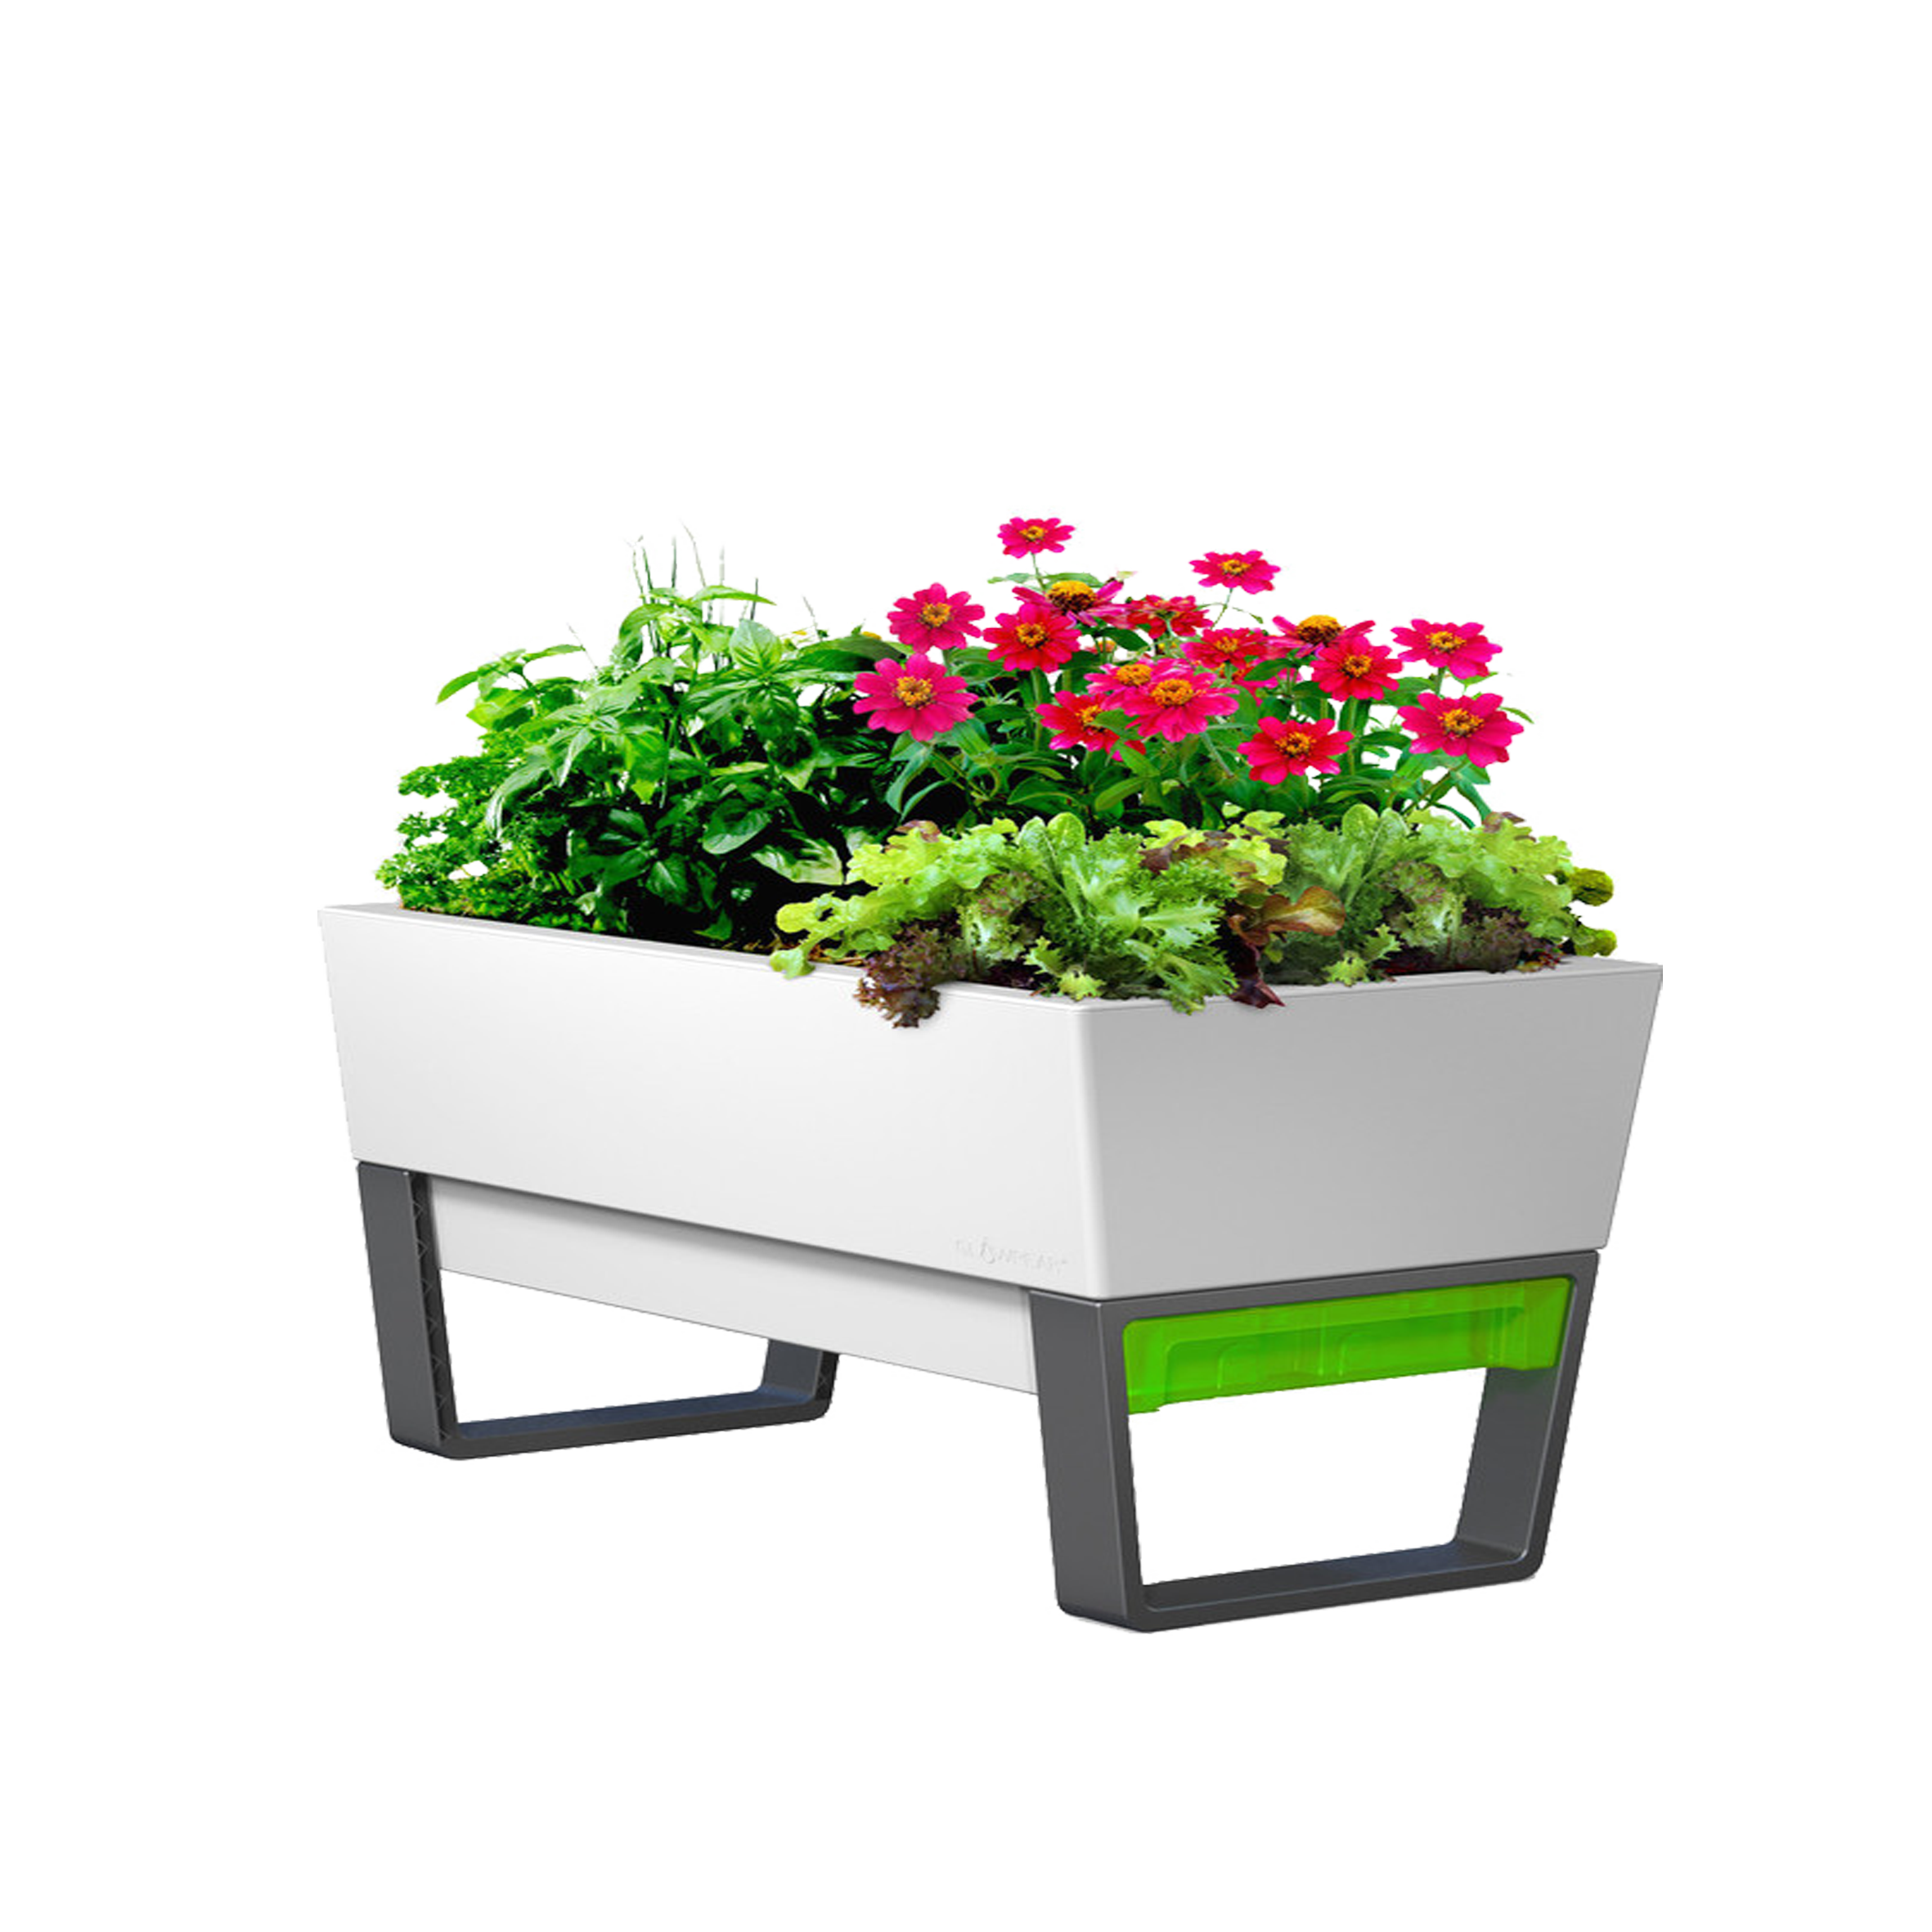 Flower box png. Garden watering can planter